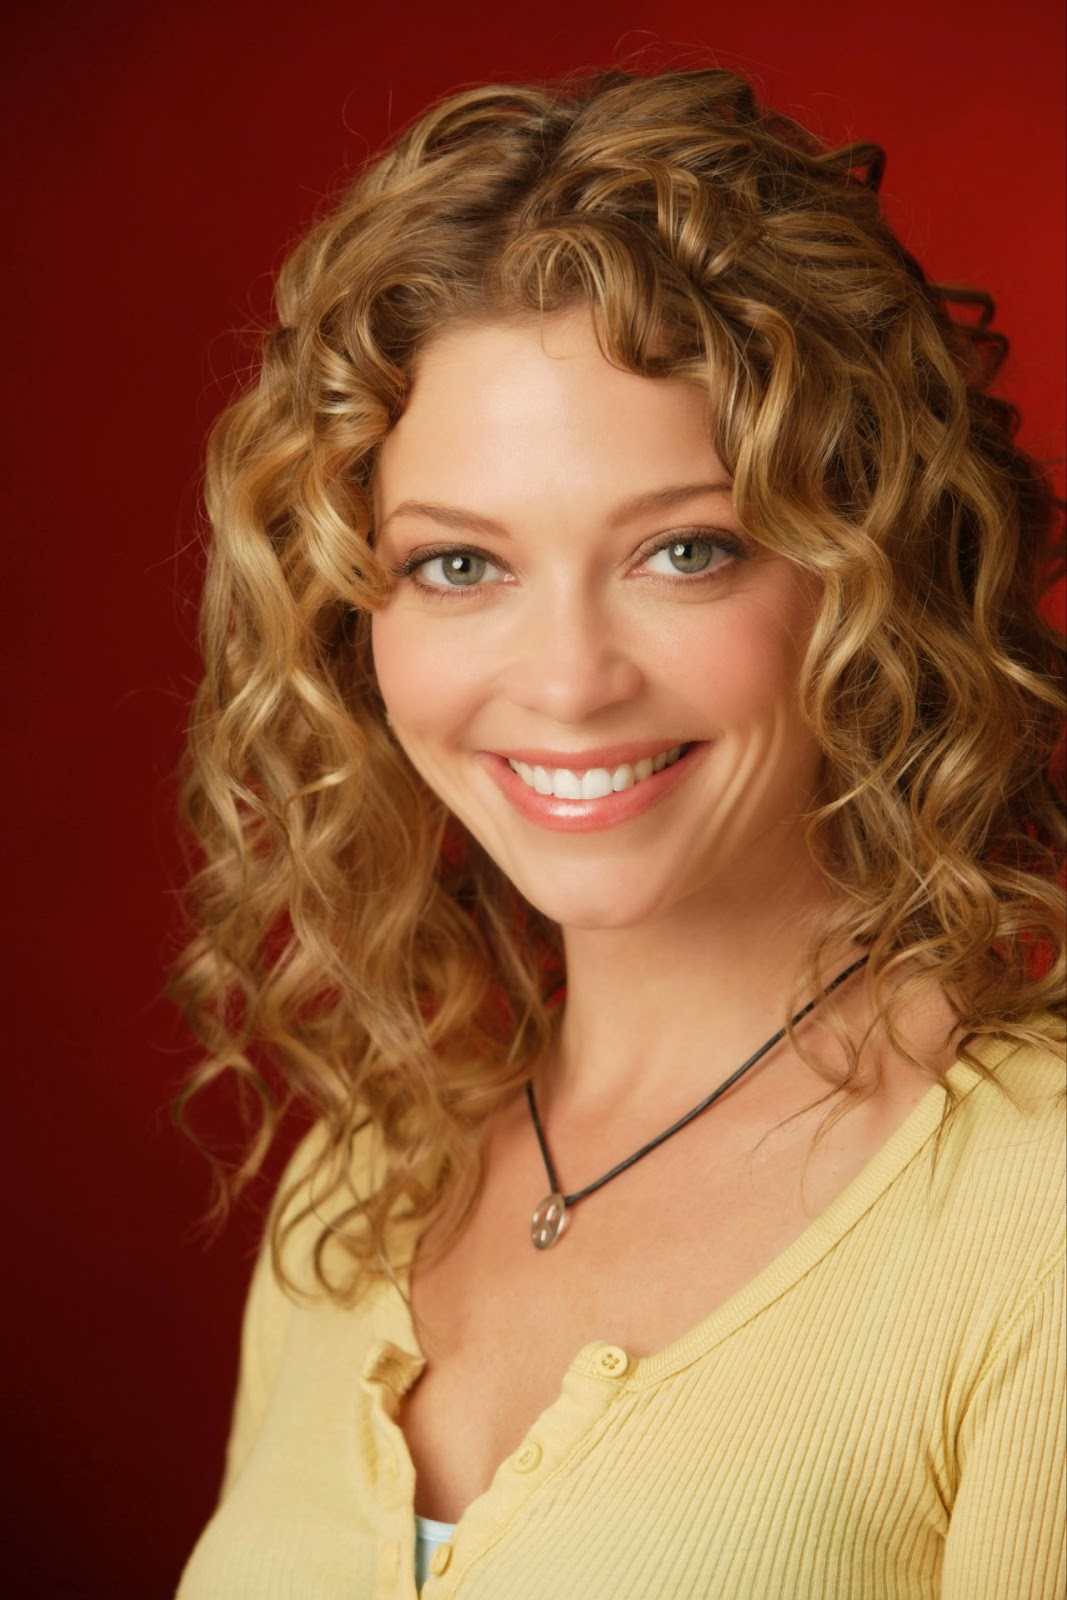 Hairstyle Artist 2011 3 Cute Easy Hairstyles For Naturally Curly Hair